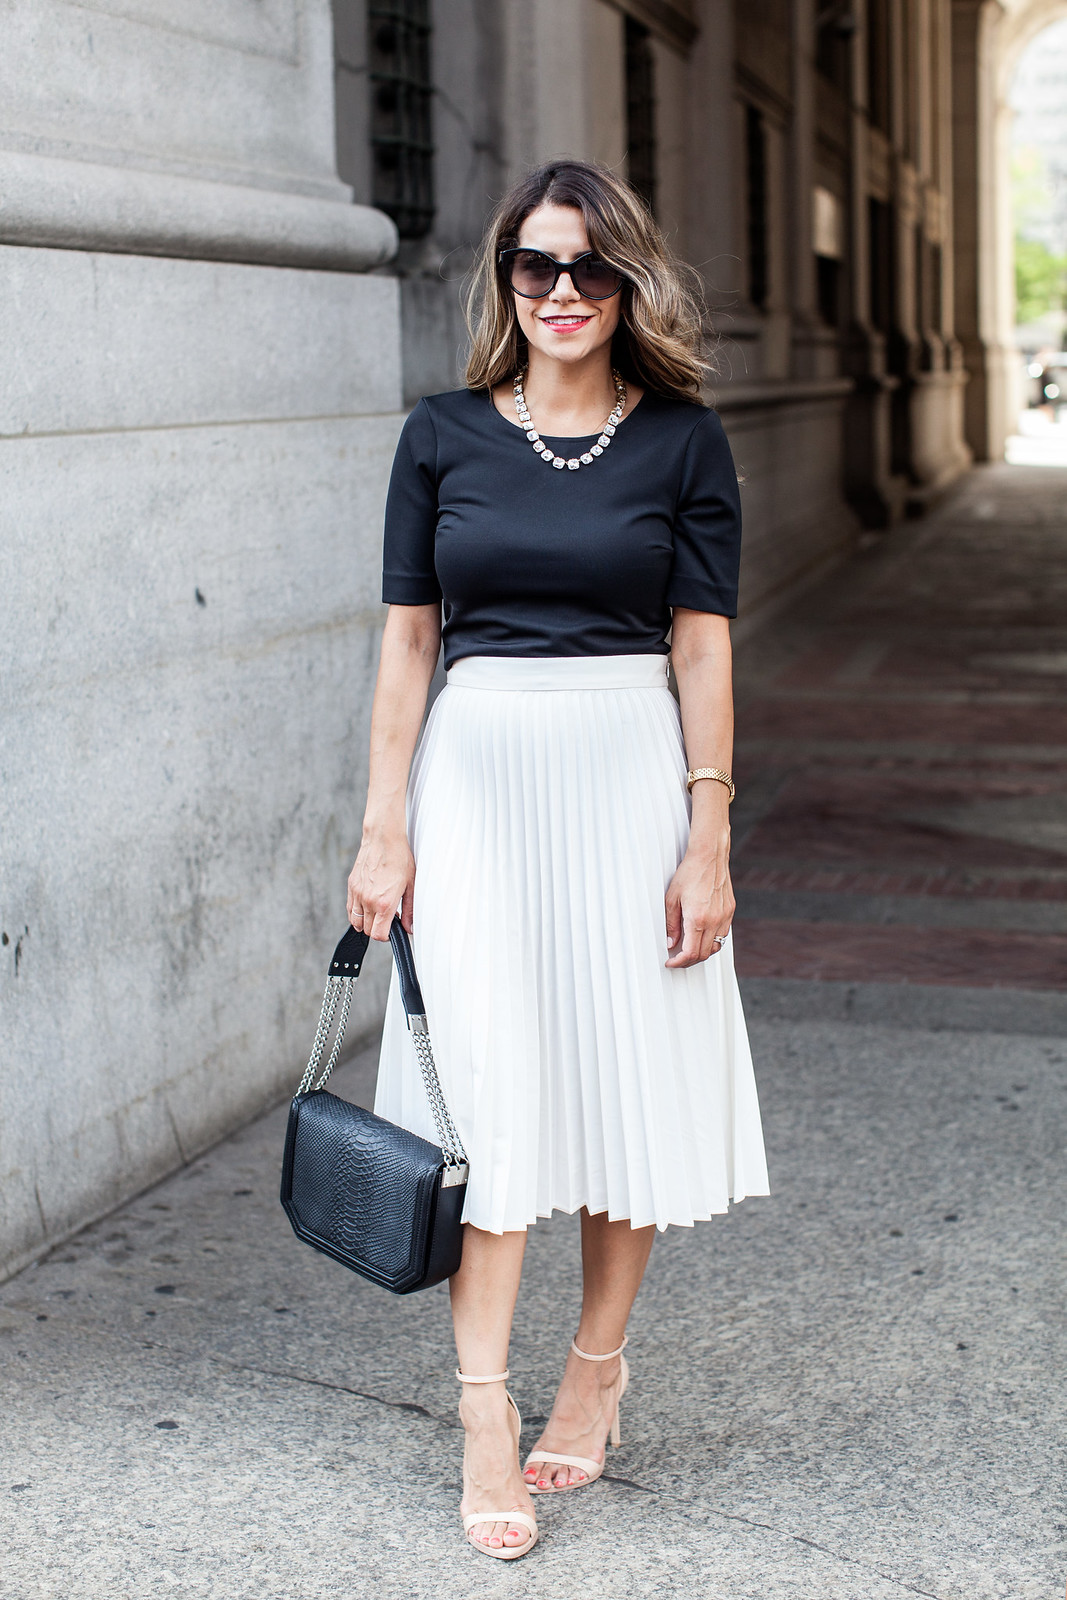 Of course, pleated skirts are not for everyday wear, as they are eye-catchy and sophisticated. You should wear something that will not draw attention from your bottom, let it be a simple chambray shirt, comfy solid neutral color sweater, khaki or denim jacket, pastel color simple tops, or classy coats.